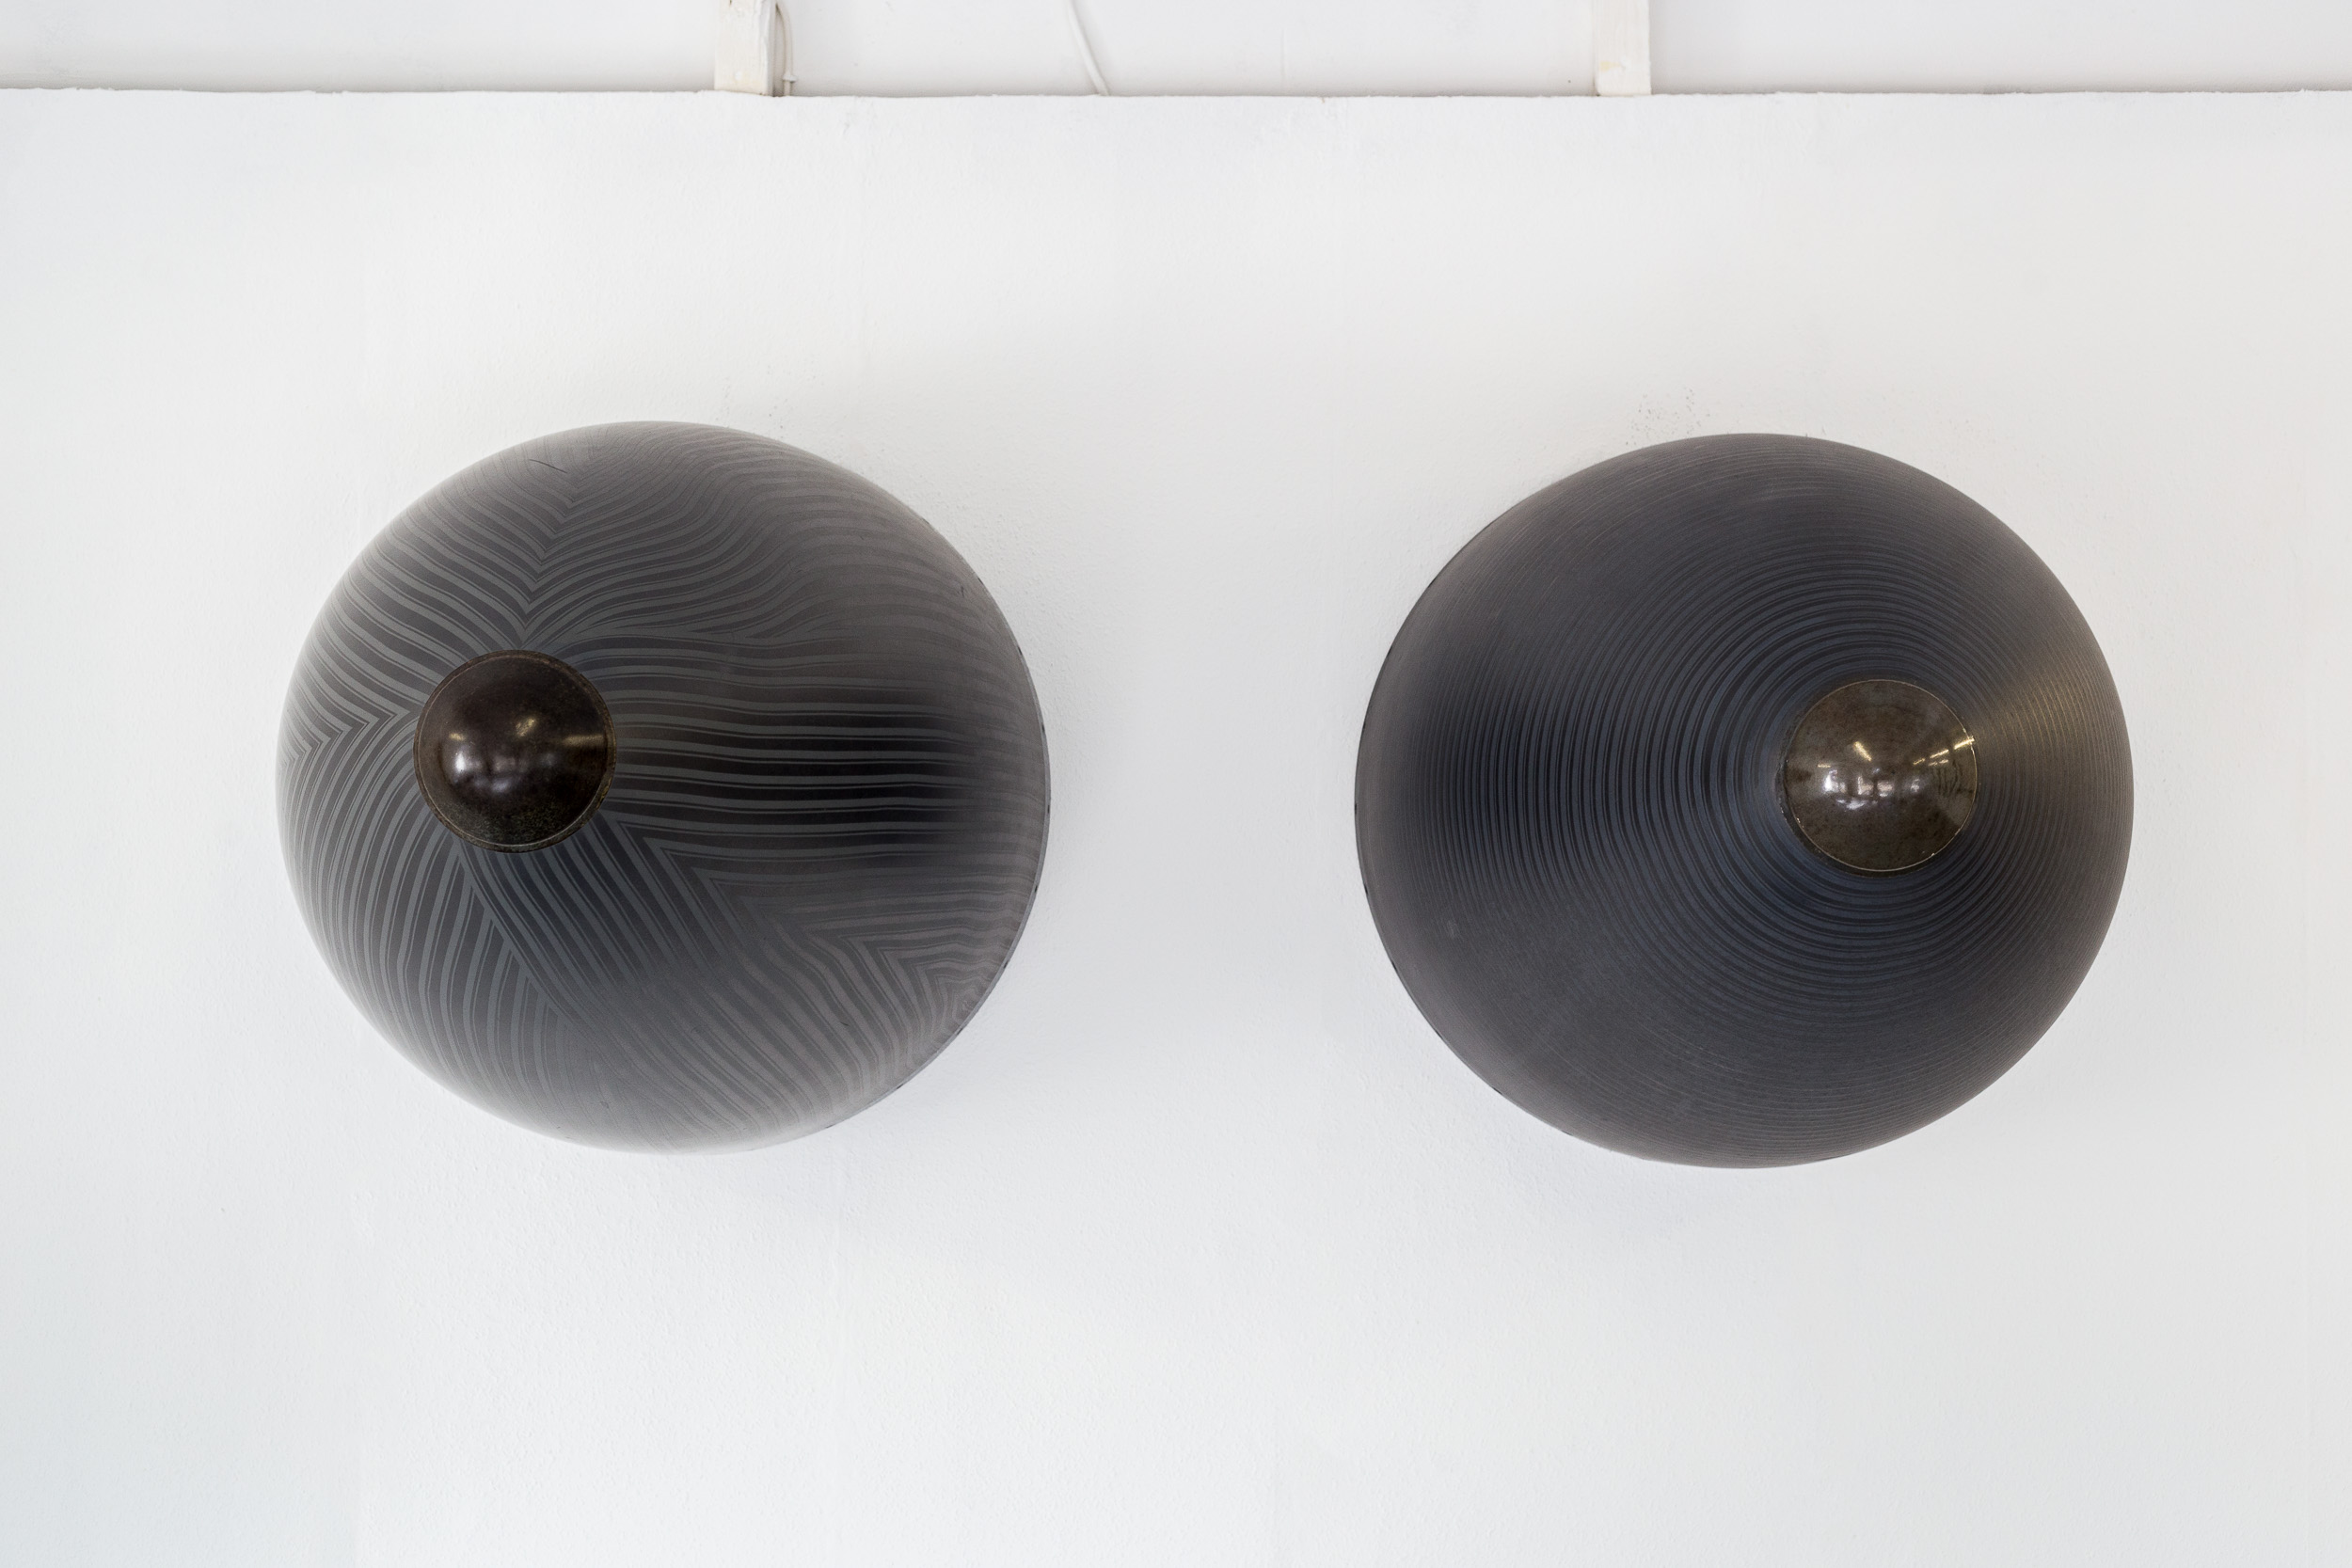 Fiona Banner,  Nose Art , 2015, harrier jump jet nose cones, graphite, 107 x 79 cm each  Photo: Kilian Bannwart